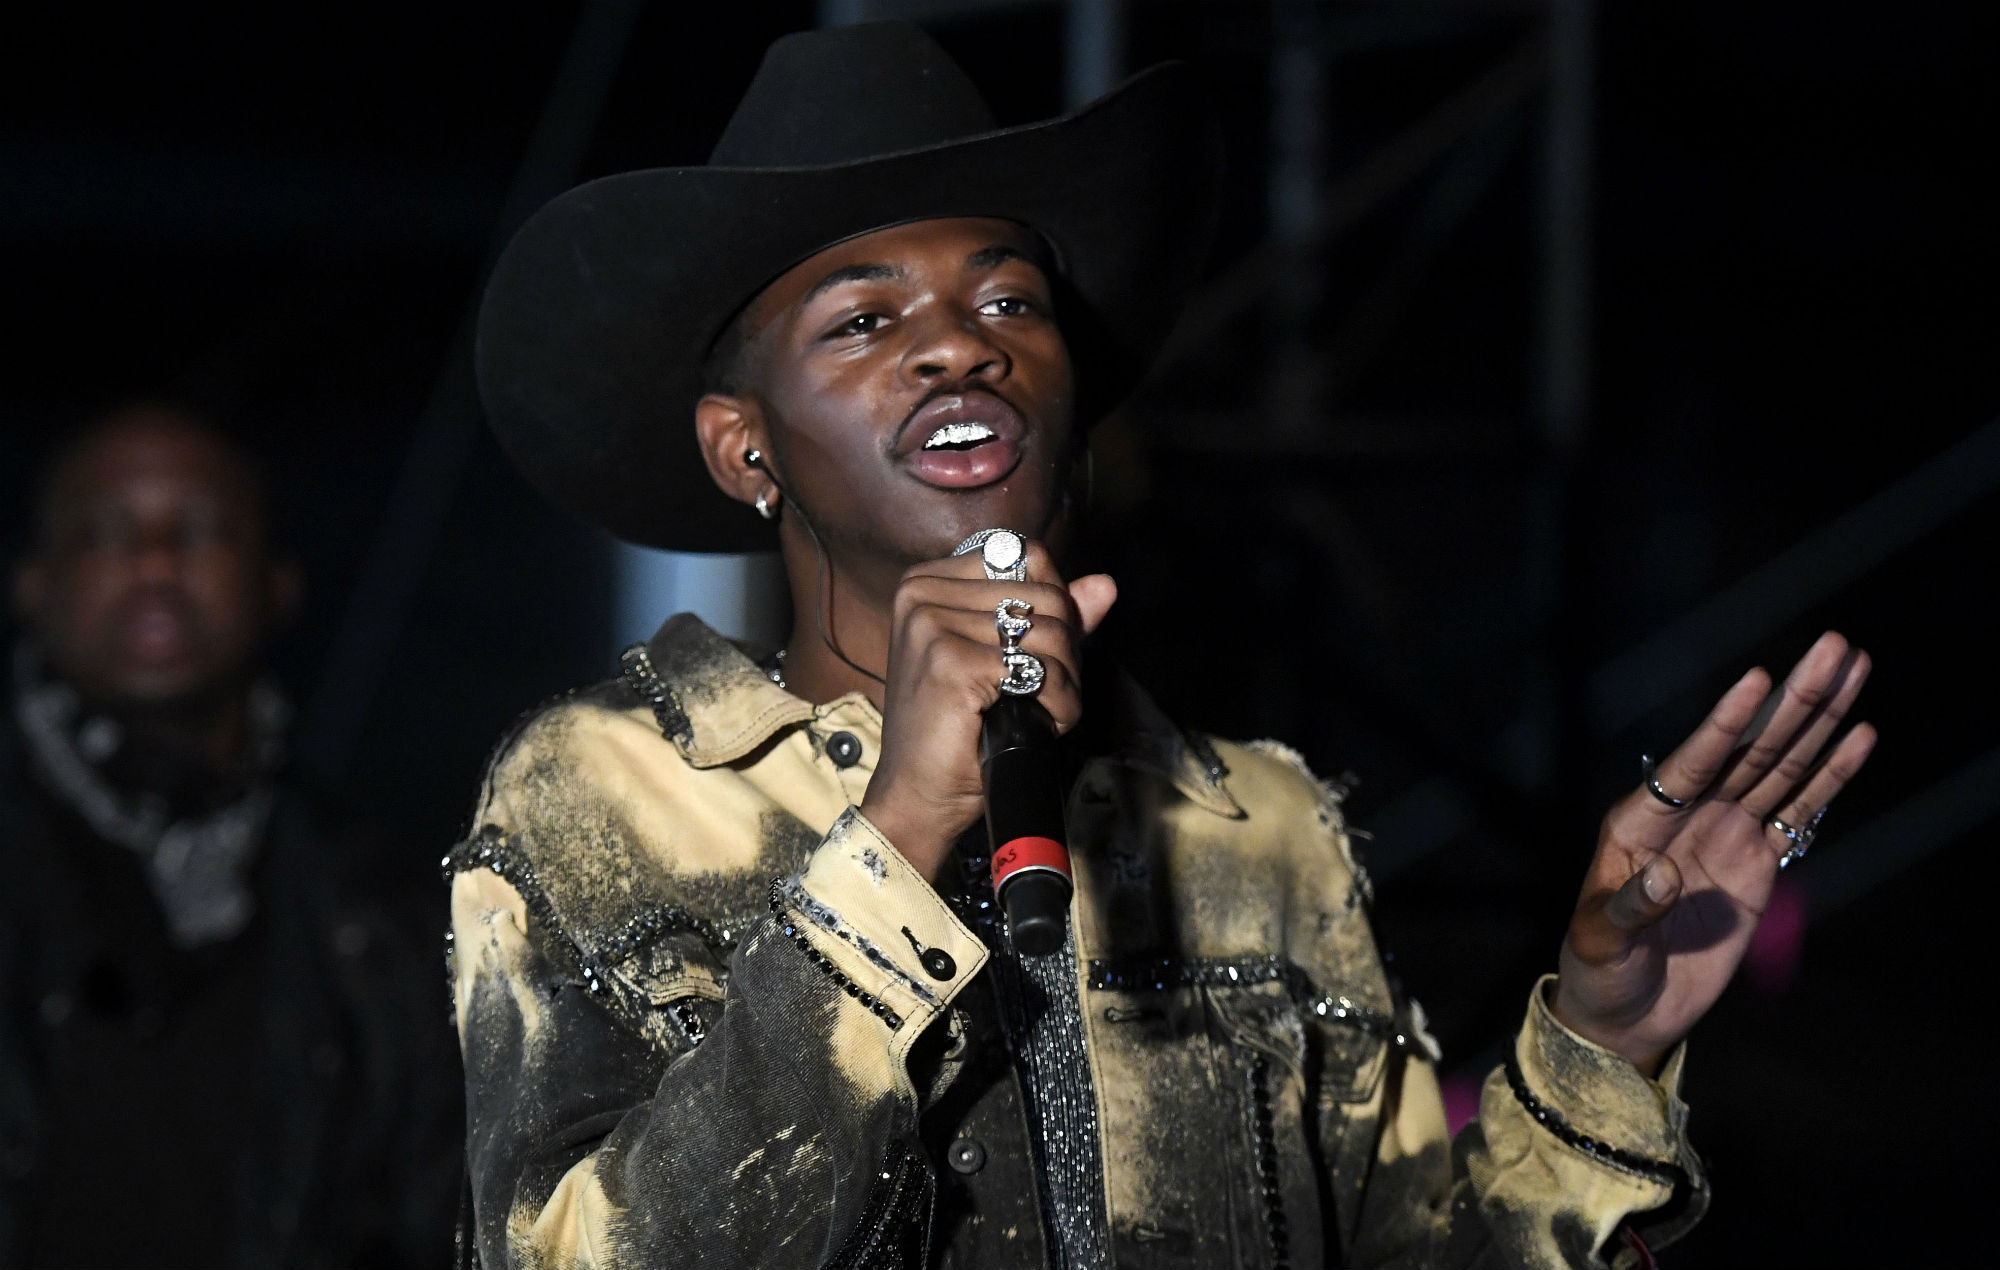 Lil Nas X is interviewed backstage during the 2019 Stagecoach Festival at Empire Polo Field